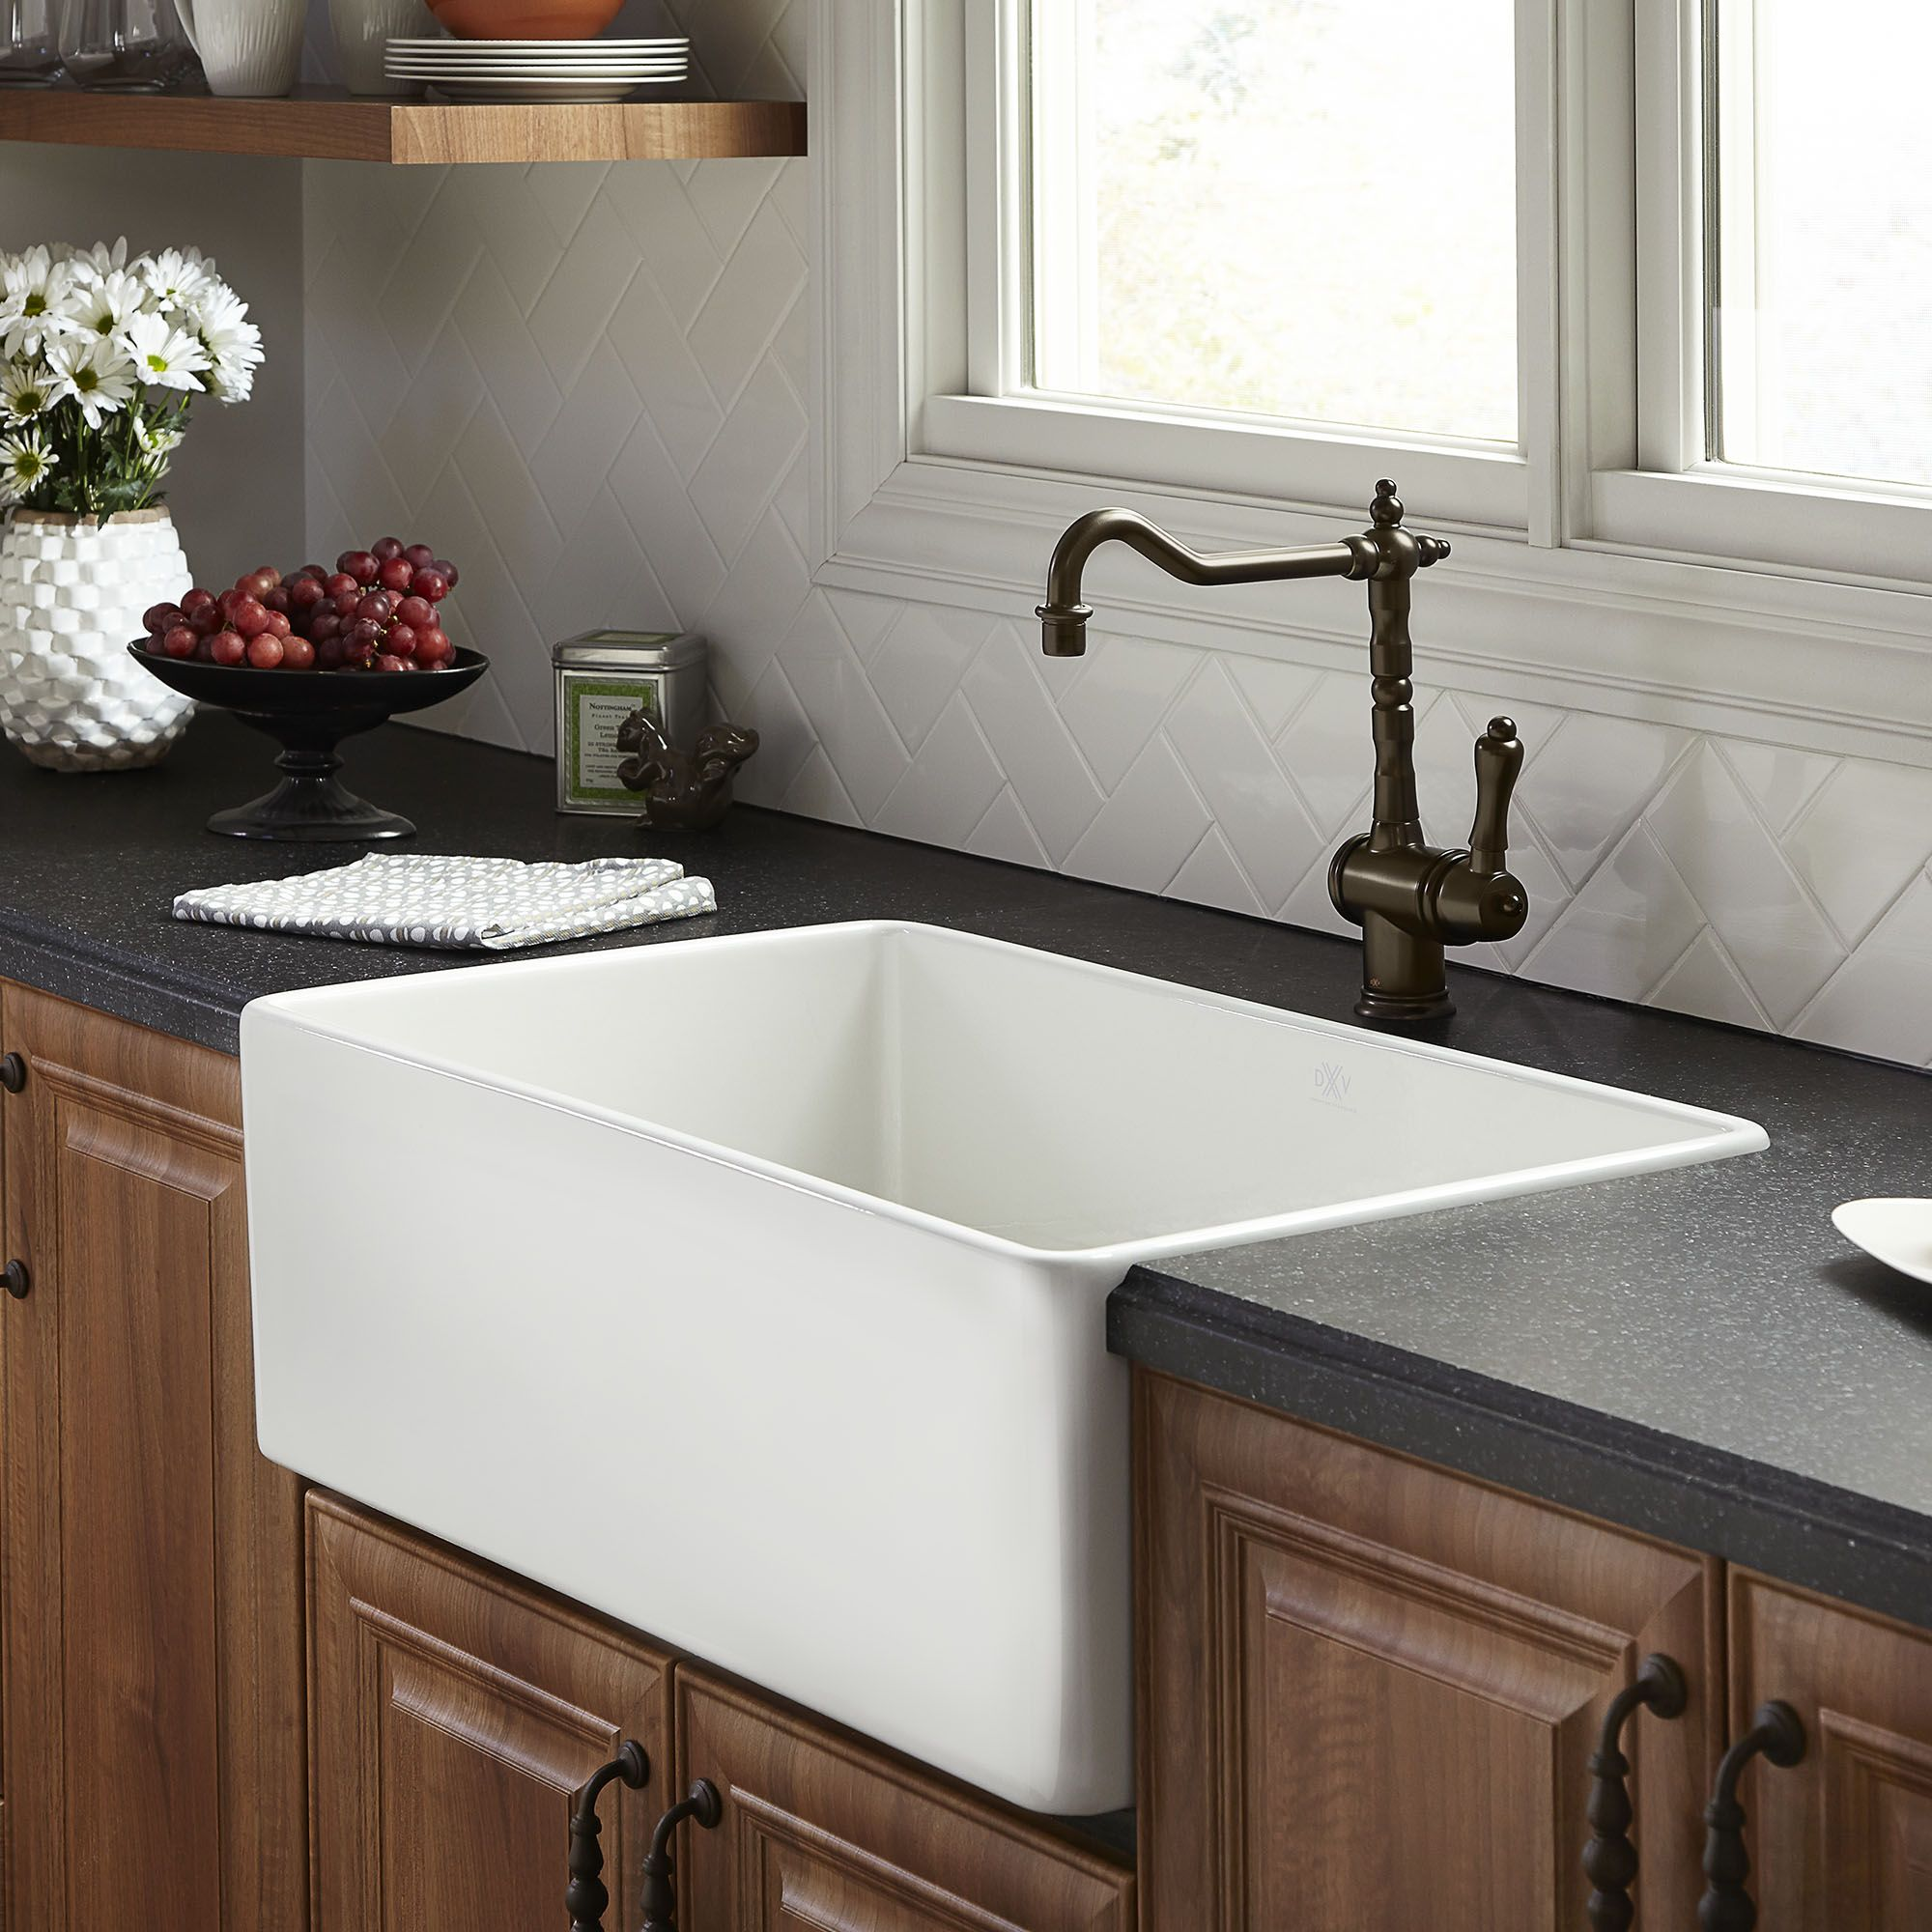 Dxv Hillside 30 Inch Apron Kitchen Sink Canvas White White Kitchen Sink Drop In Farmhouse Sink Apron Sink Kitchen